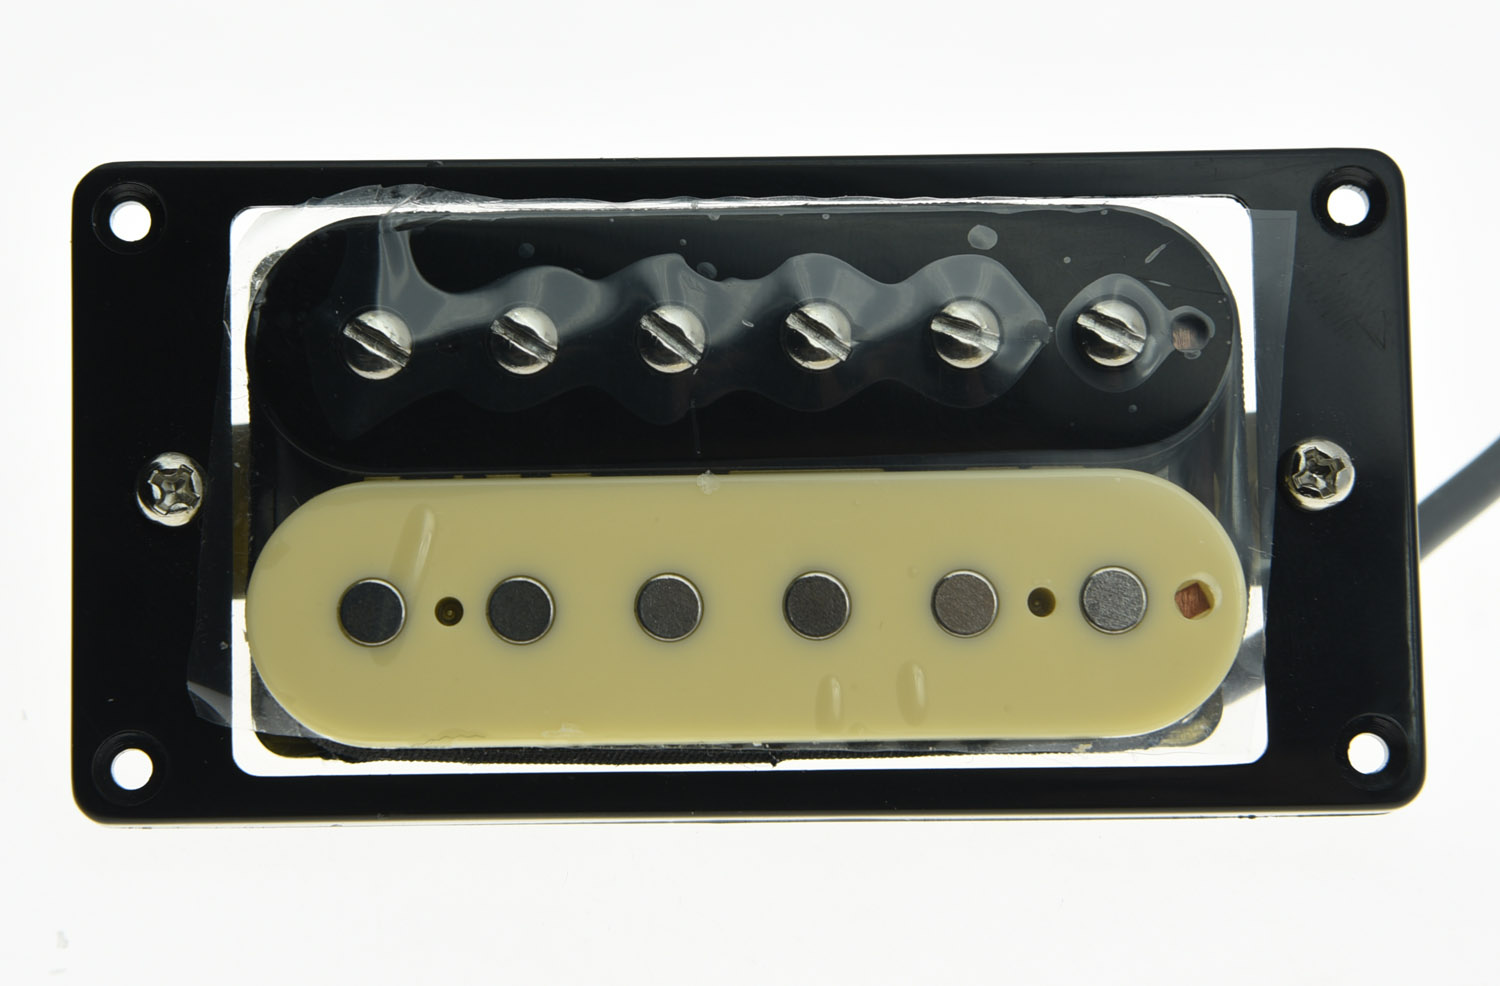 KAISH Alnico V Guitar Humbucker NECK Pickup 50's Vintage Sound Pickups Zebra Style belcat bass pickup 5 string humbucker double coil pickup guitar parts accessories black